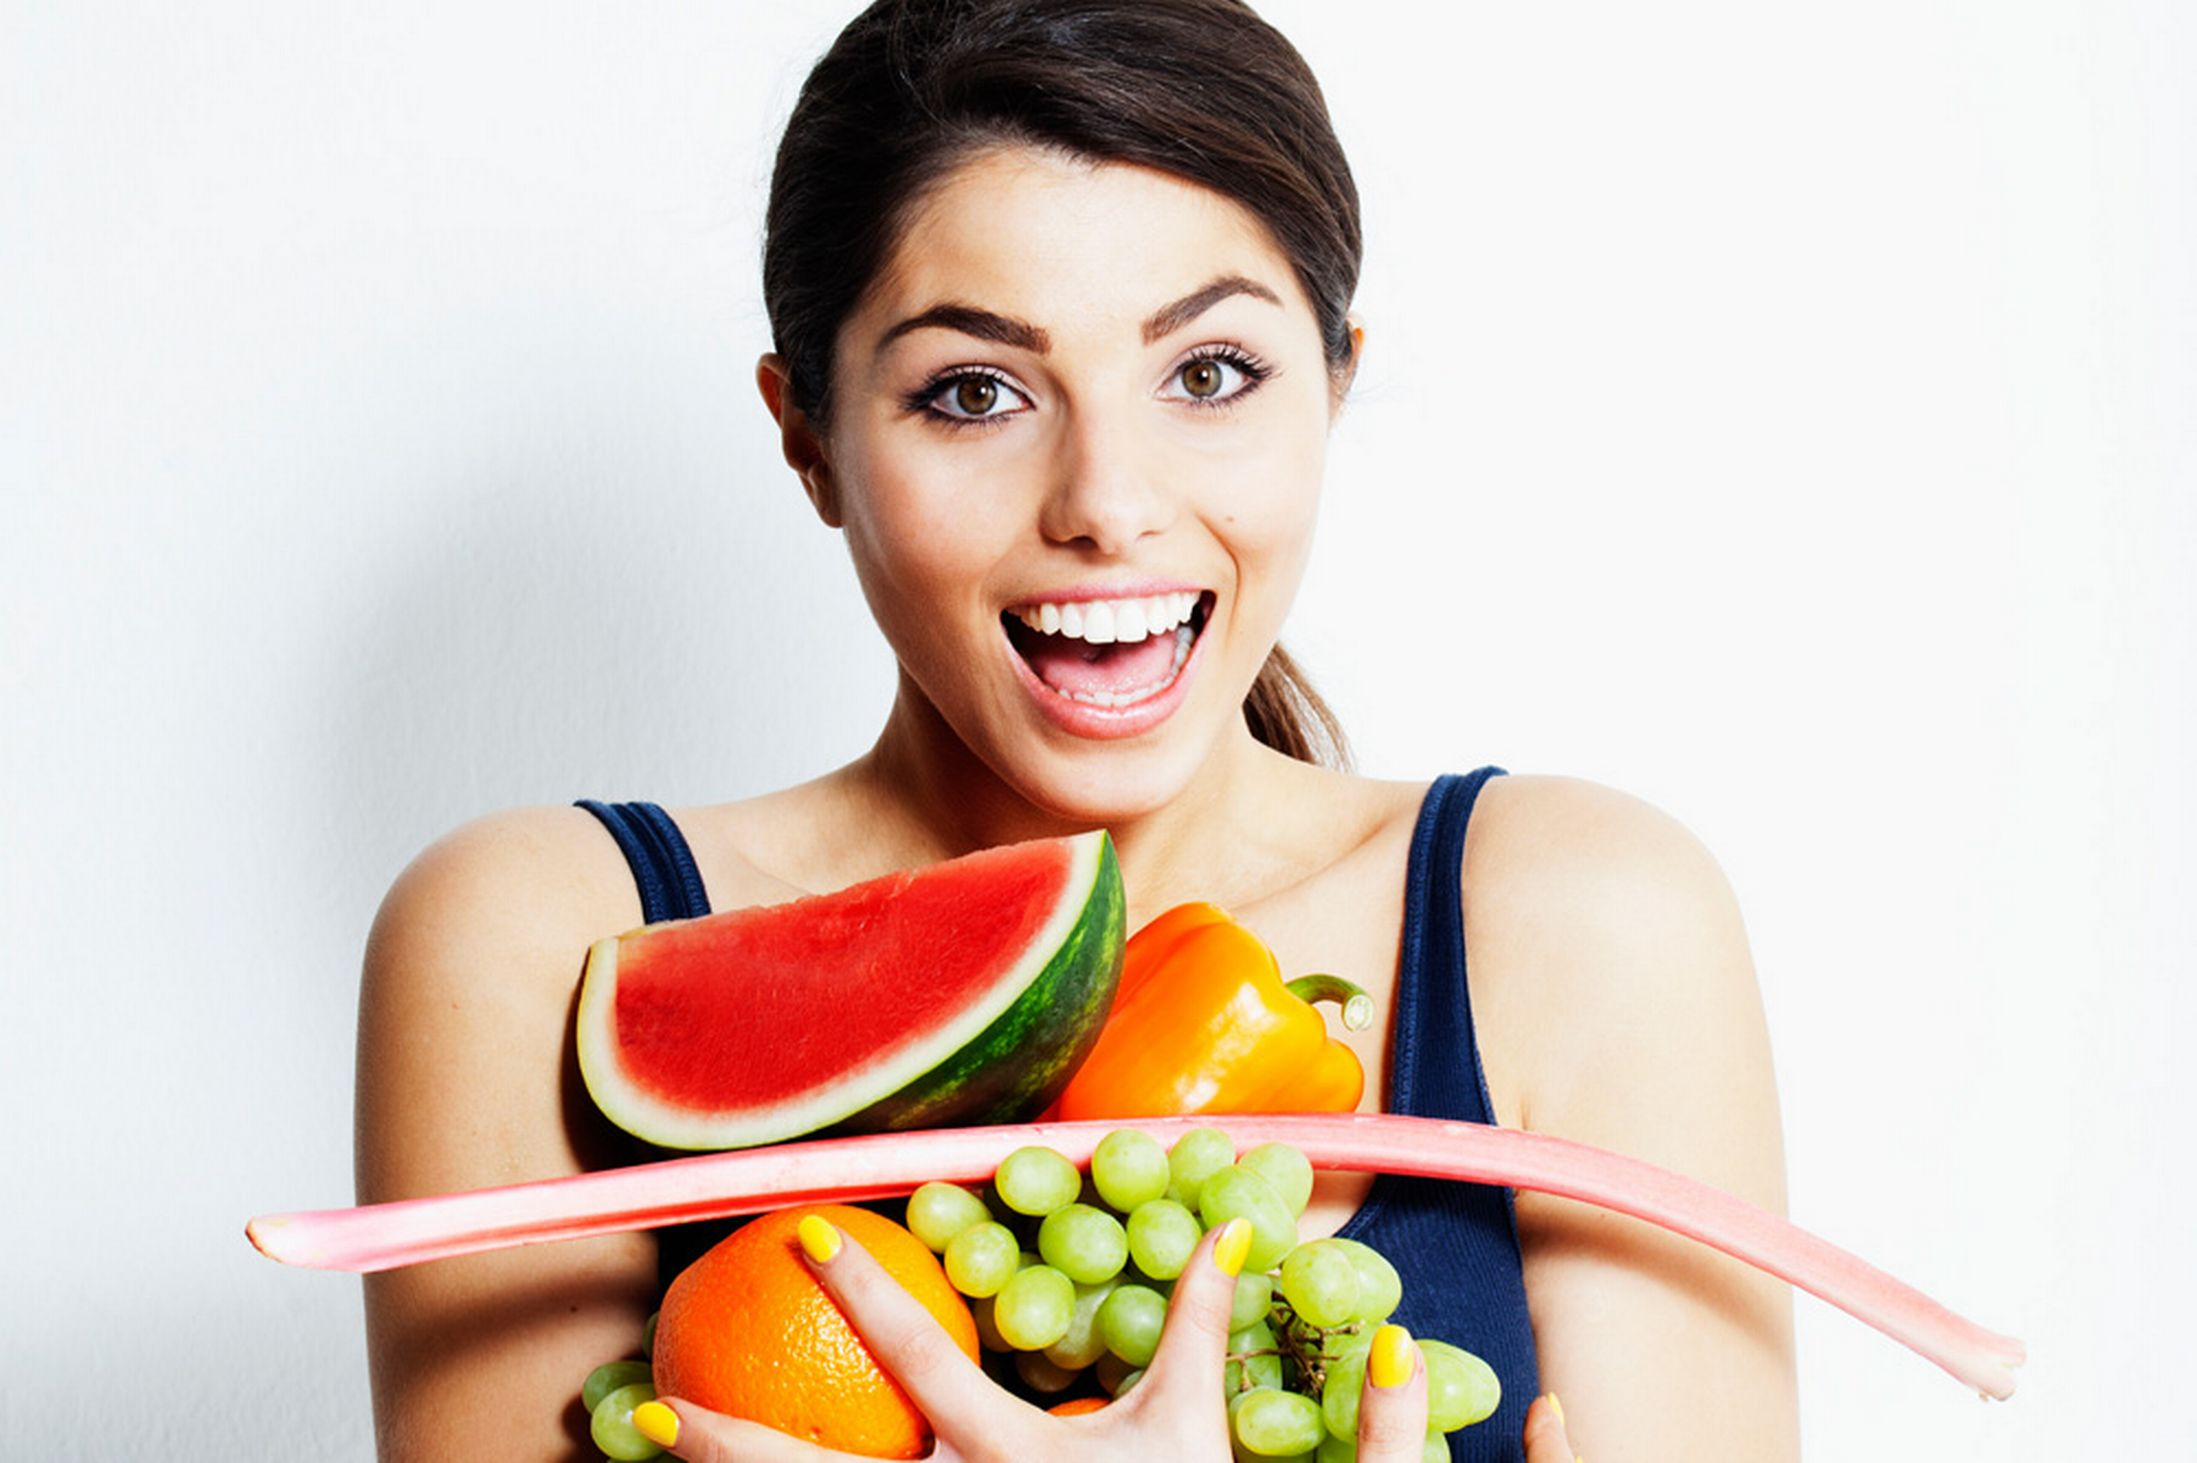 Woman-eating-fruits